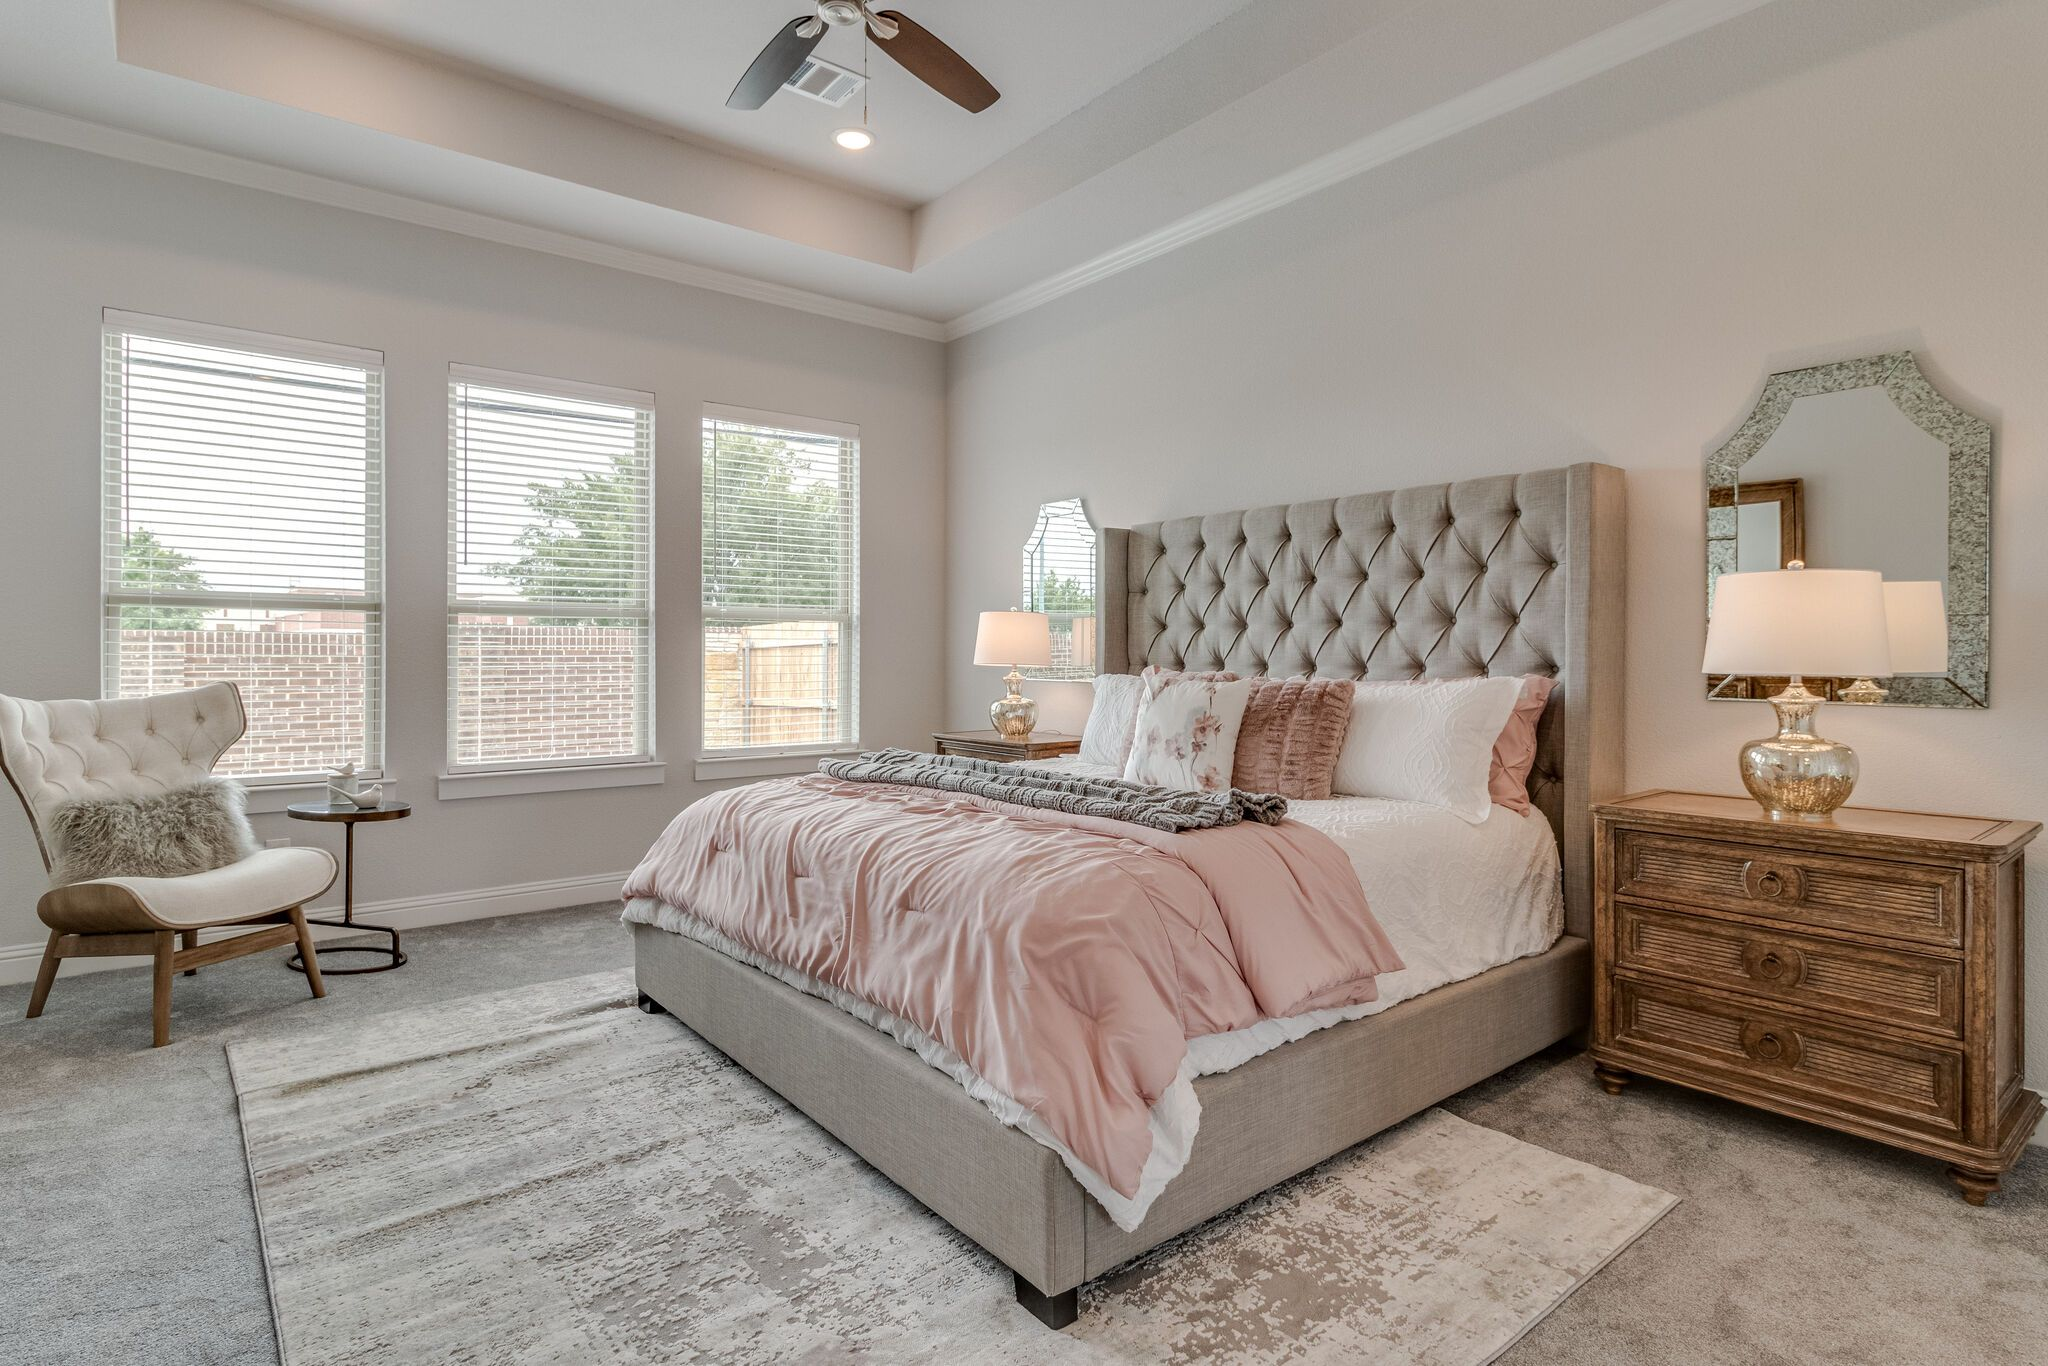 Bedroom featured in the Noble – IIC Bonus Room By Royal Family Homes in Dallas, TX